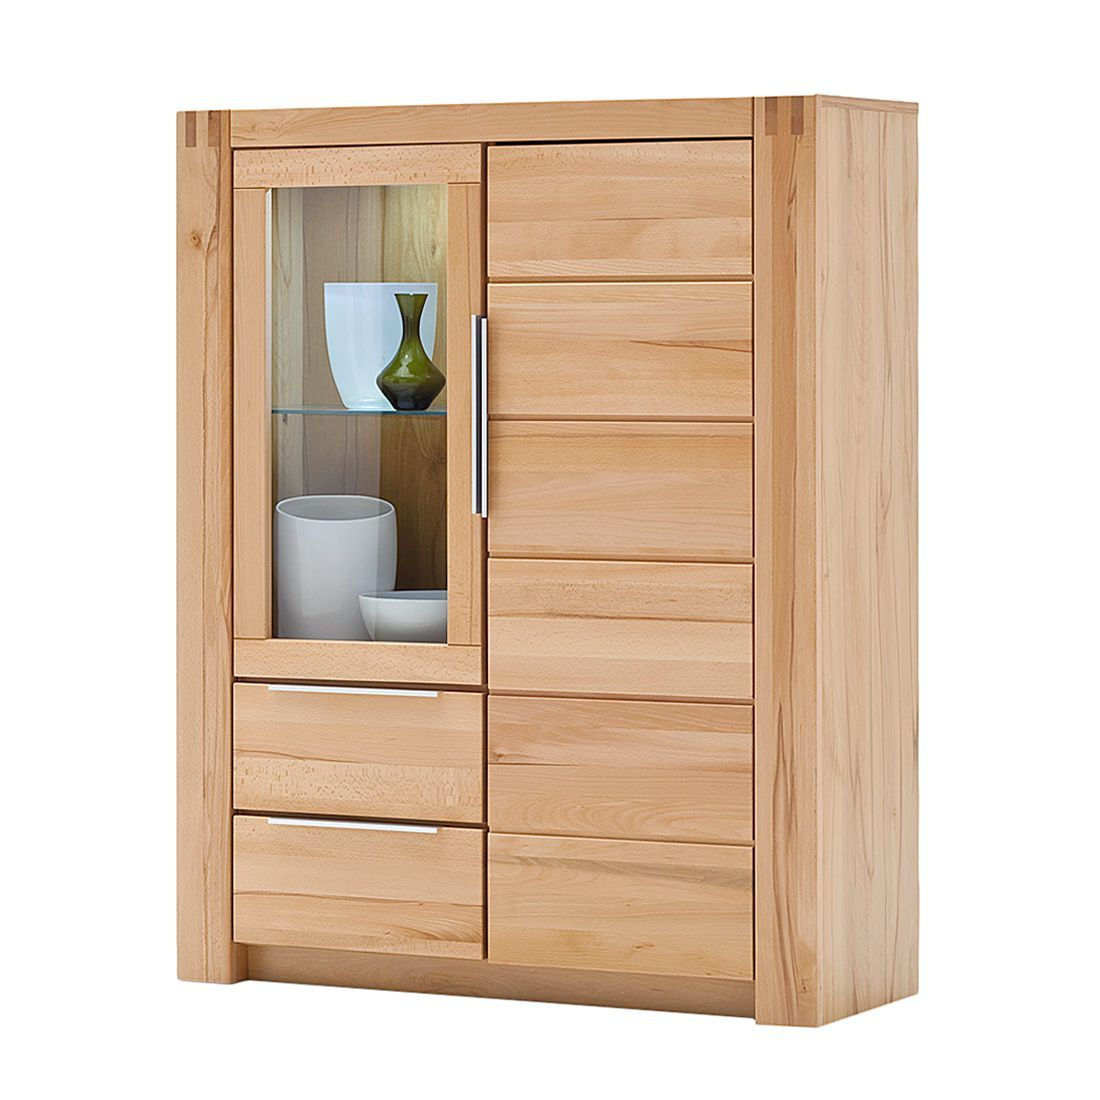 28 Kollektion Tv Schrank Buche Highboard Kernbuche